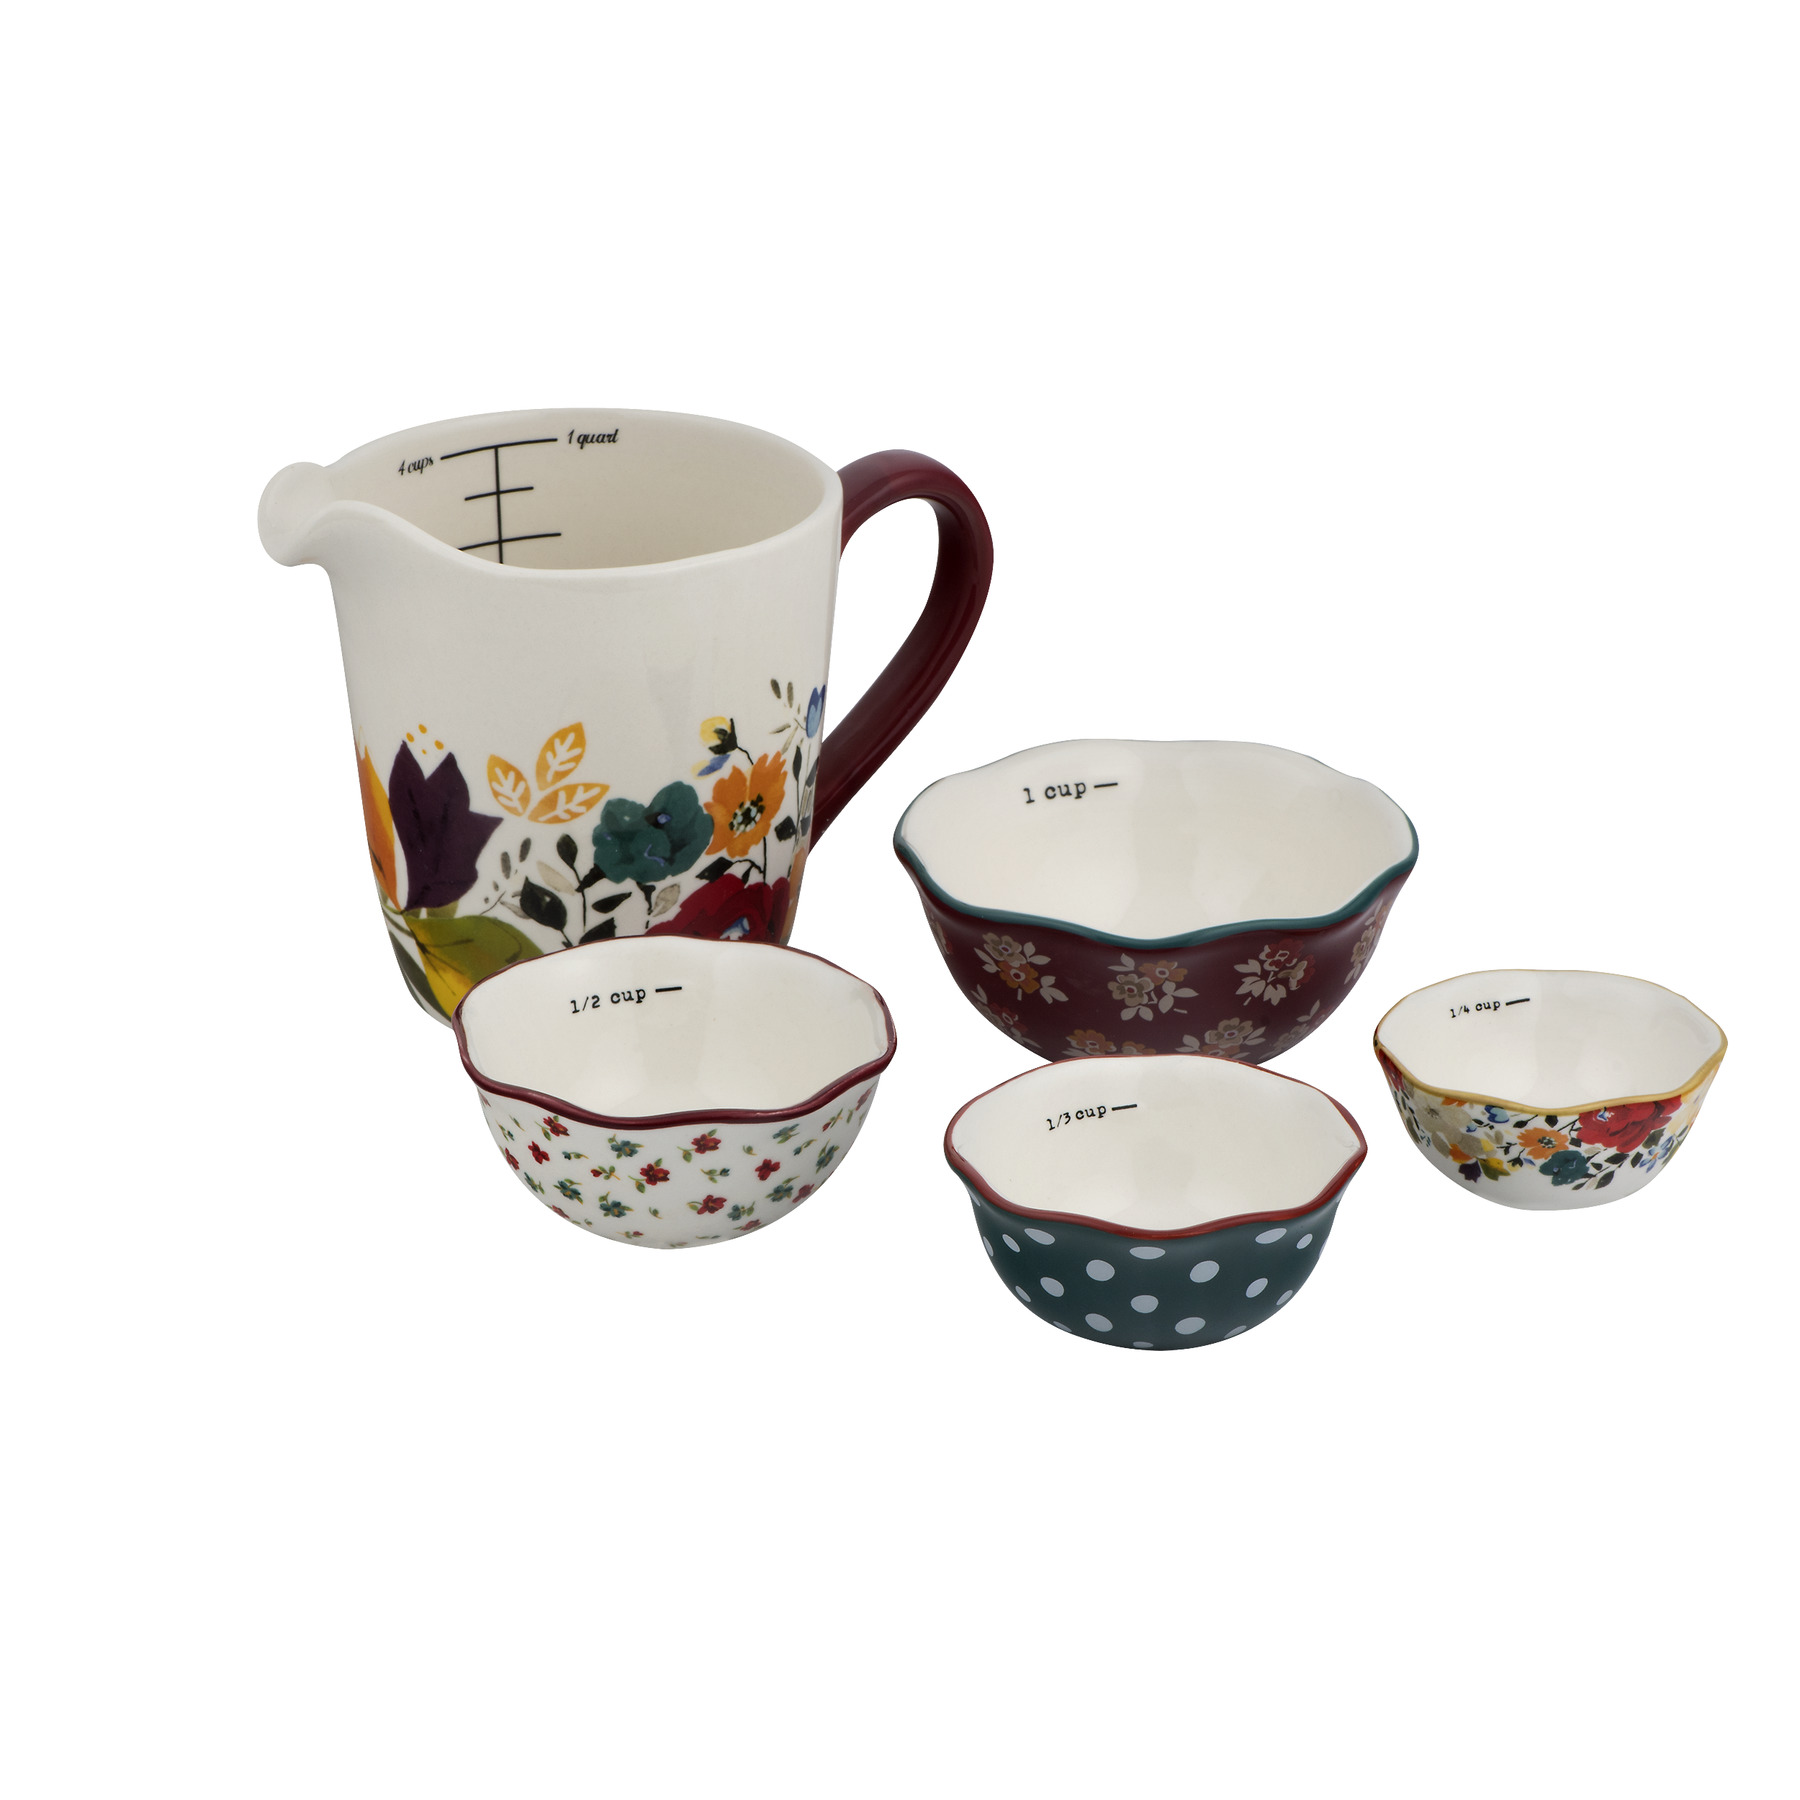 Autum Harvest Measuring Cup and Bowls Set New Pioneer Woman 5 Pc